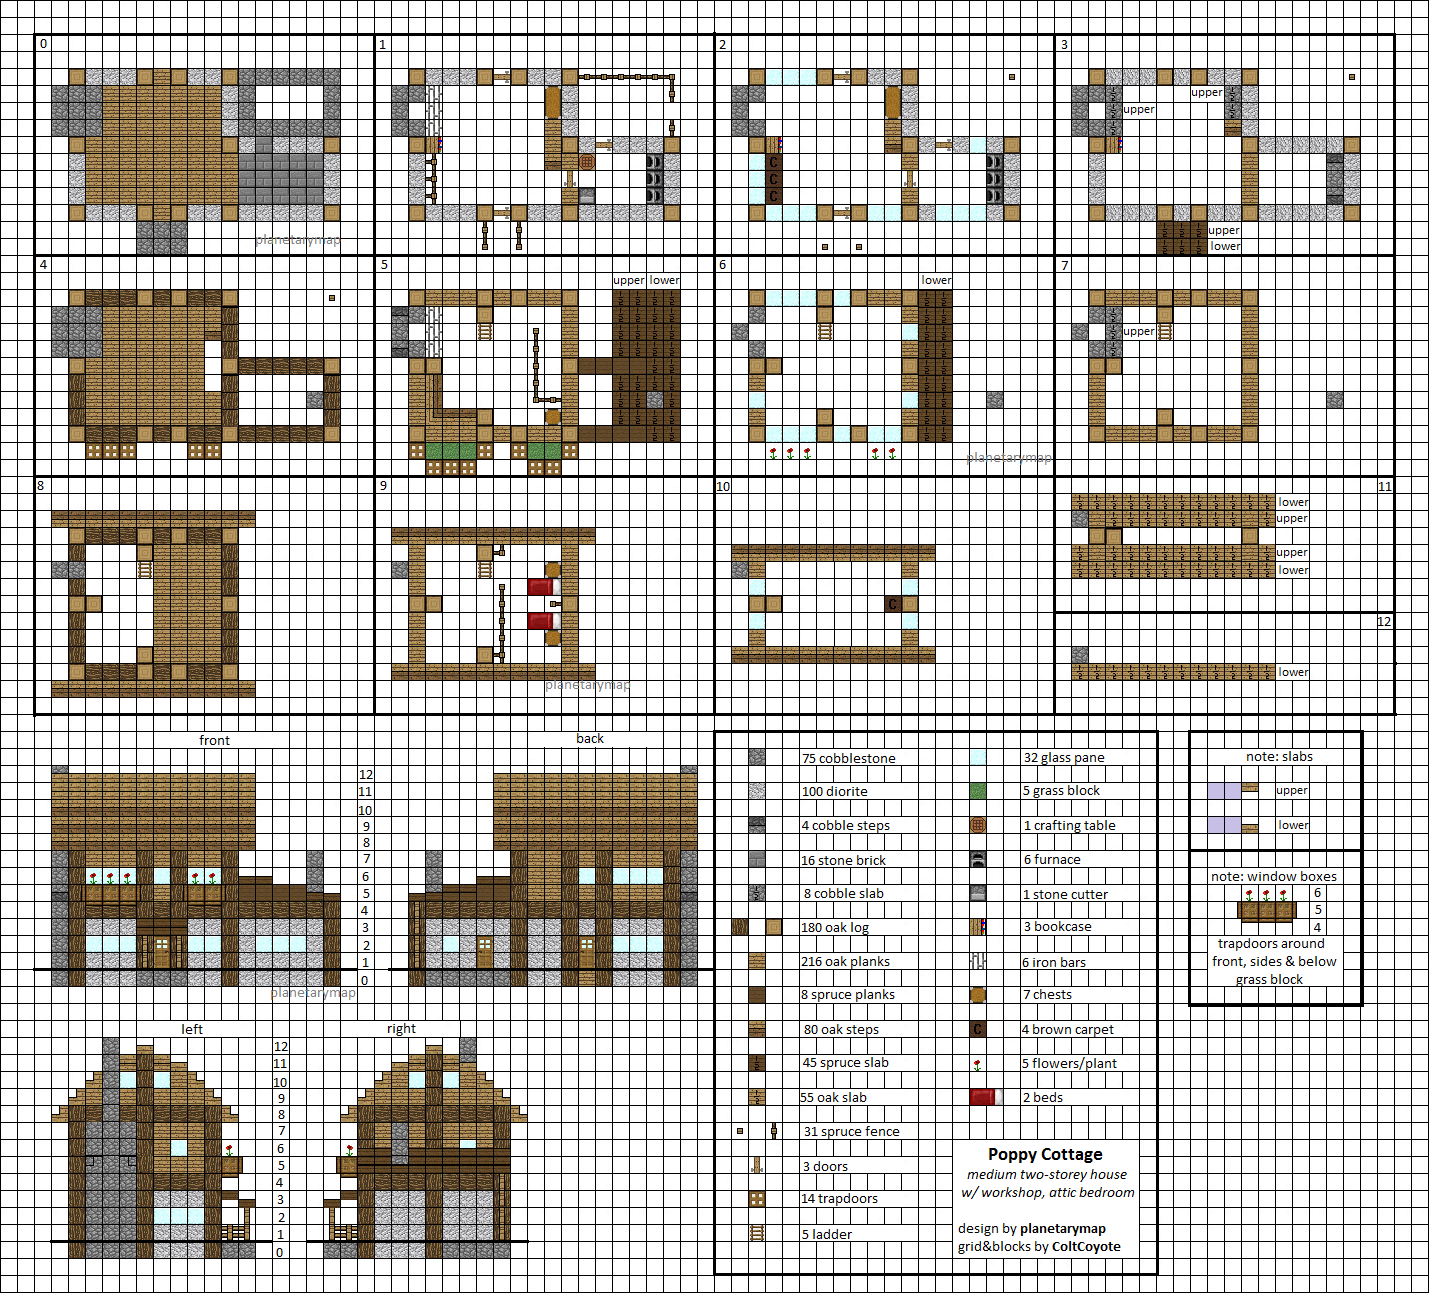 Poppy cottage medium minecraft house blueprints by planetarymap poppy cottage medium minecraft house blueprints by planetarymapiantart on deviantart malvernweather Choice Image